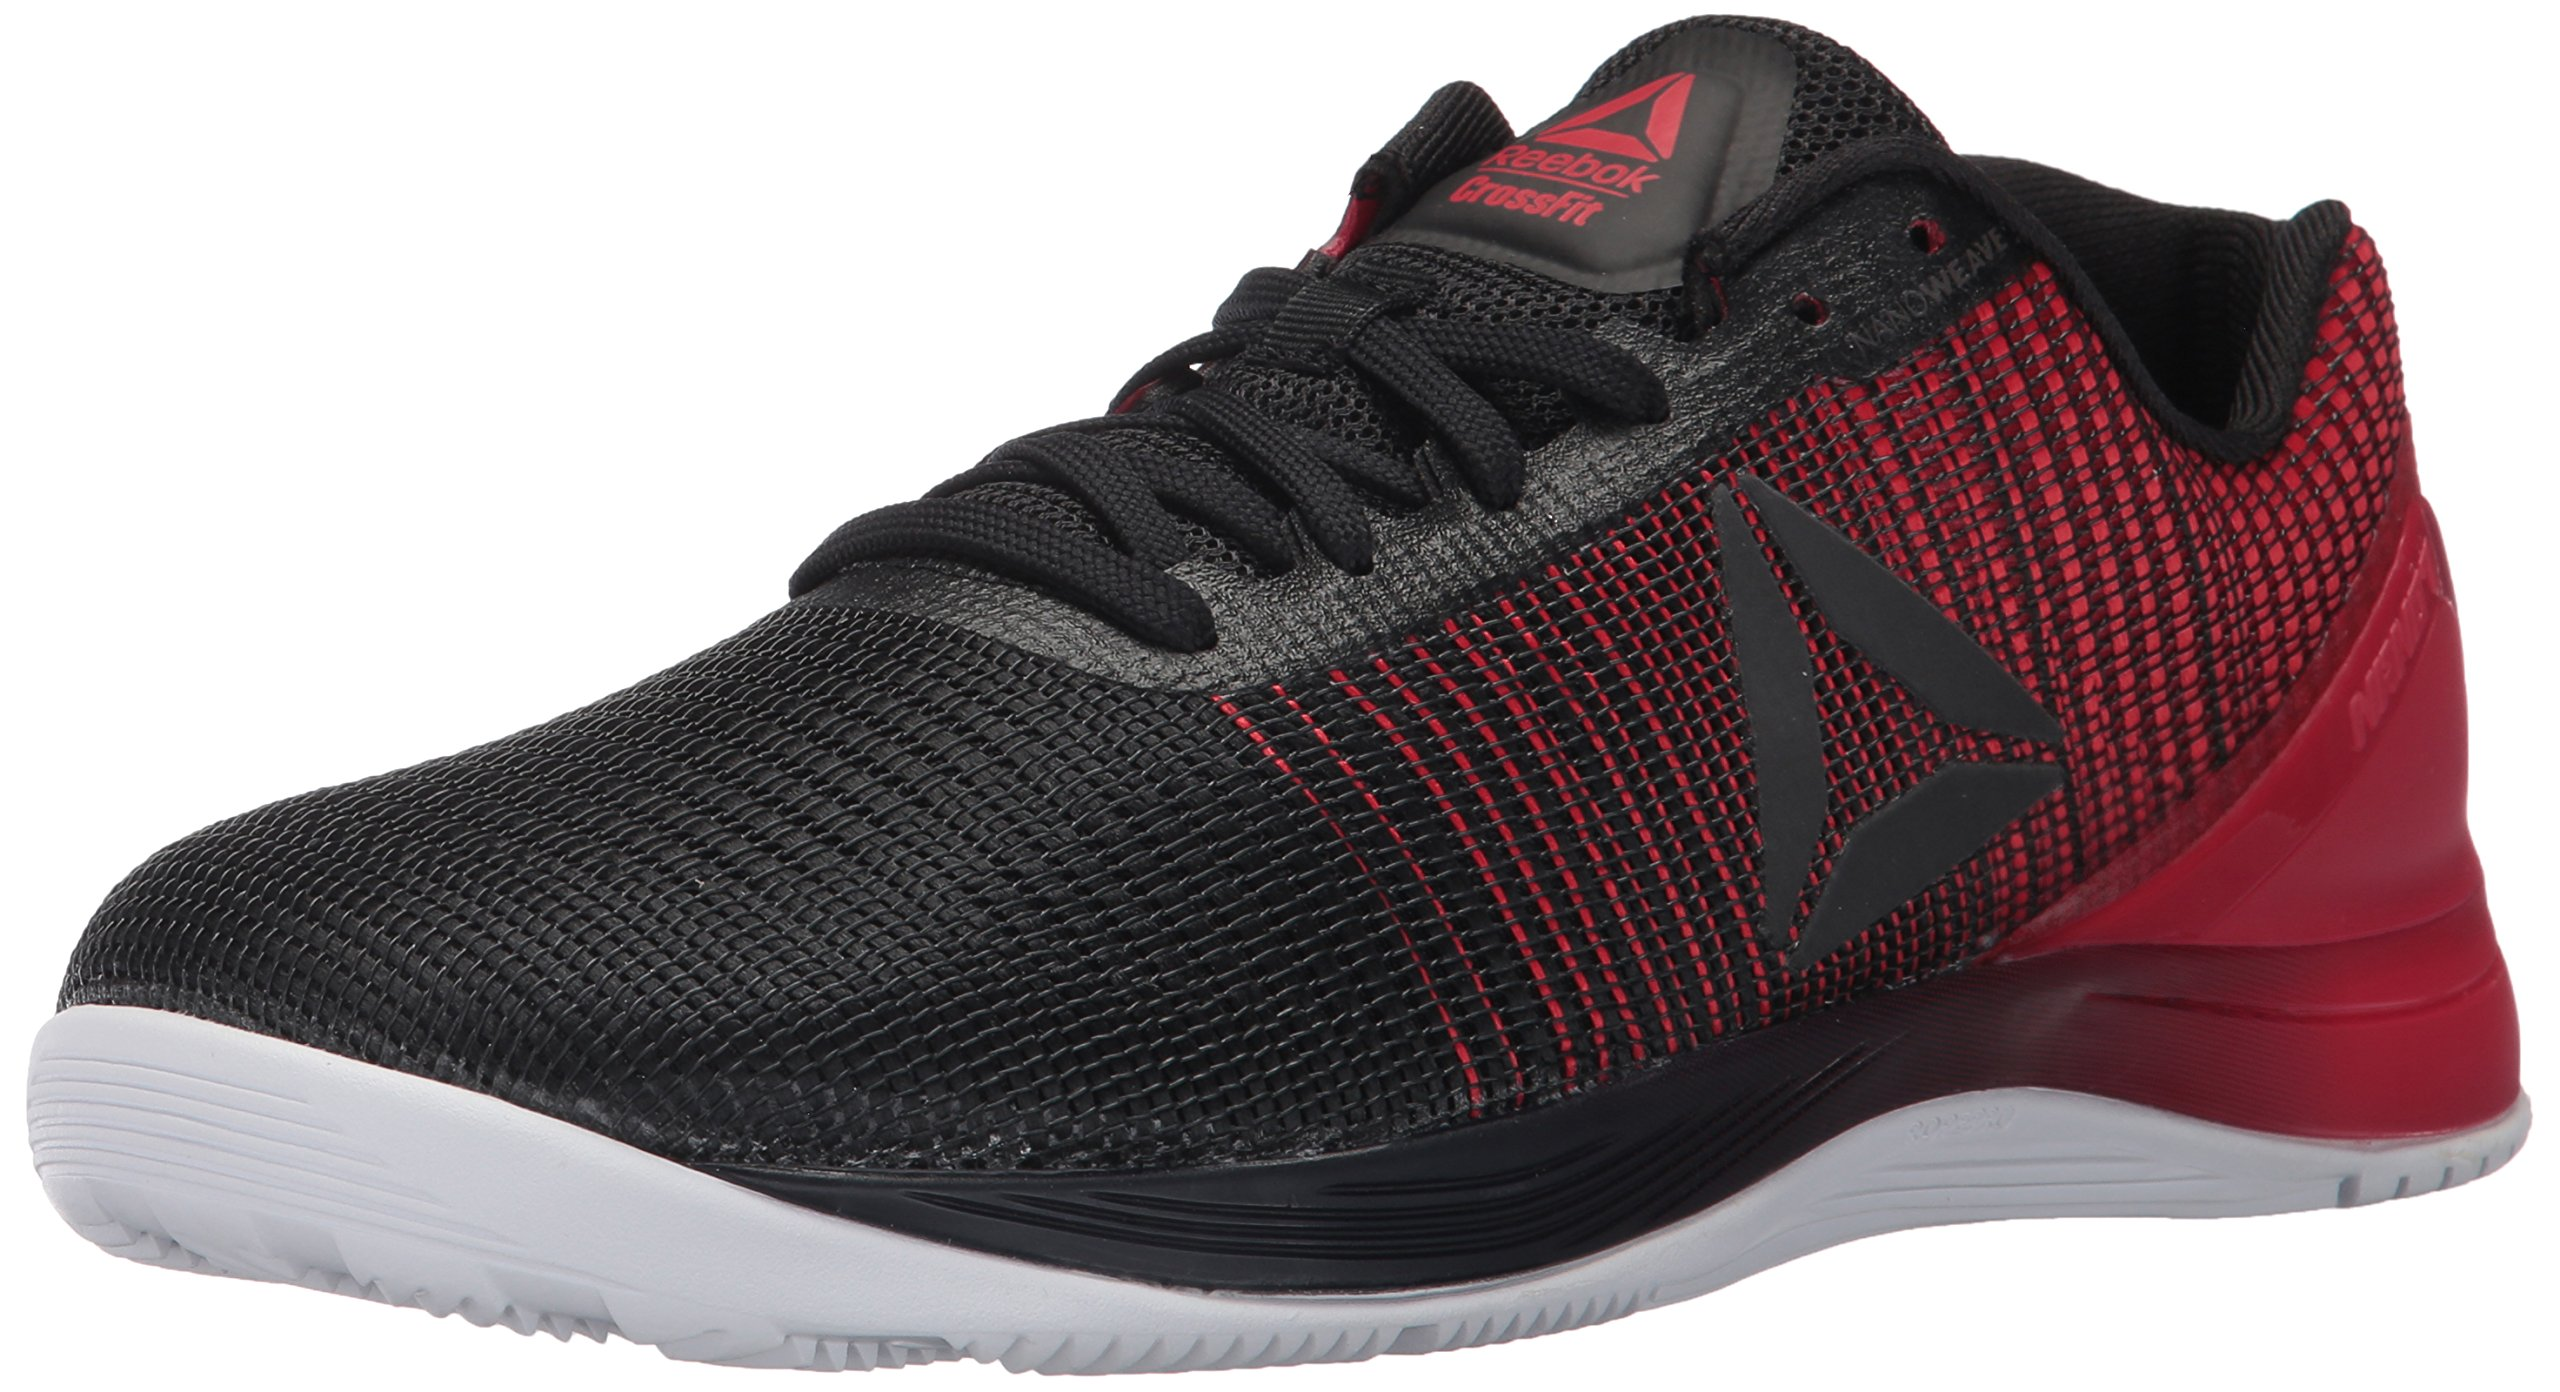 Reebok Men's Crossfit Nano 7.0 Cross-Trainer Shoe, Black/White/Primal Red, 11 M US